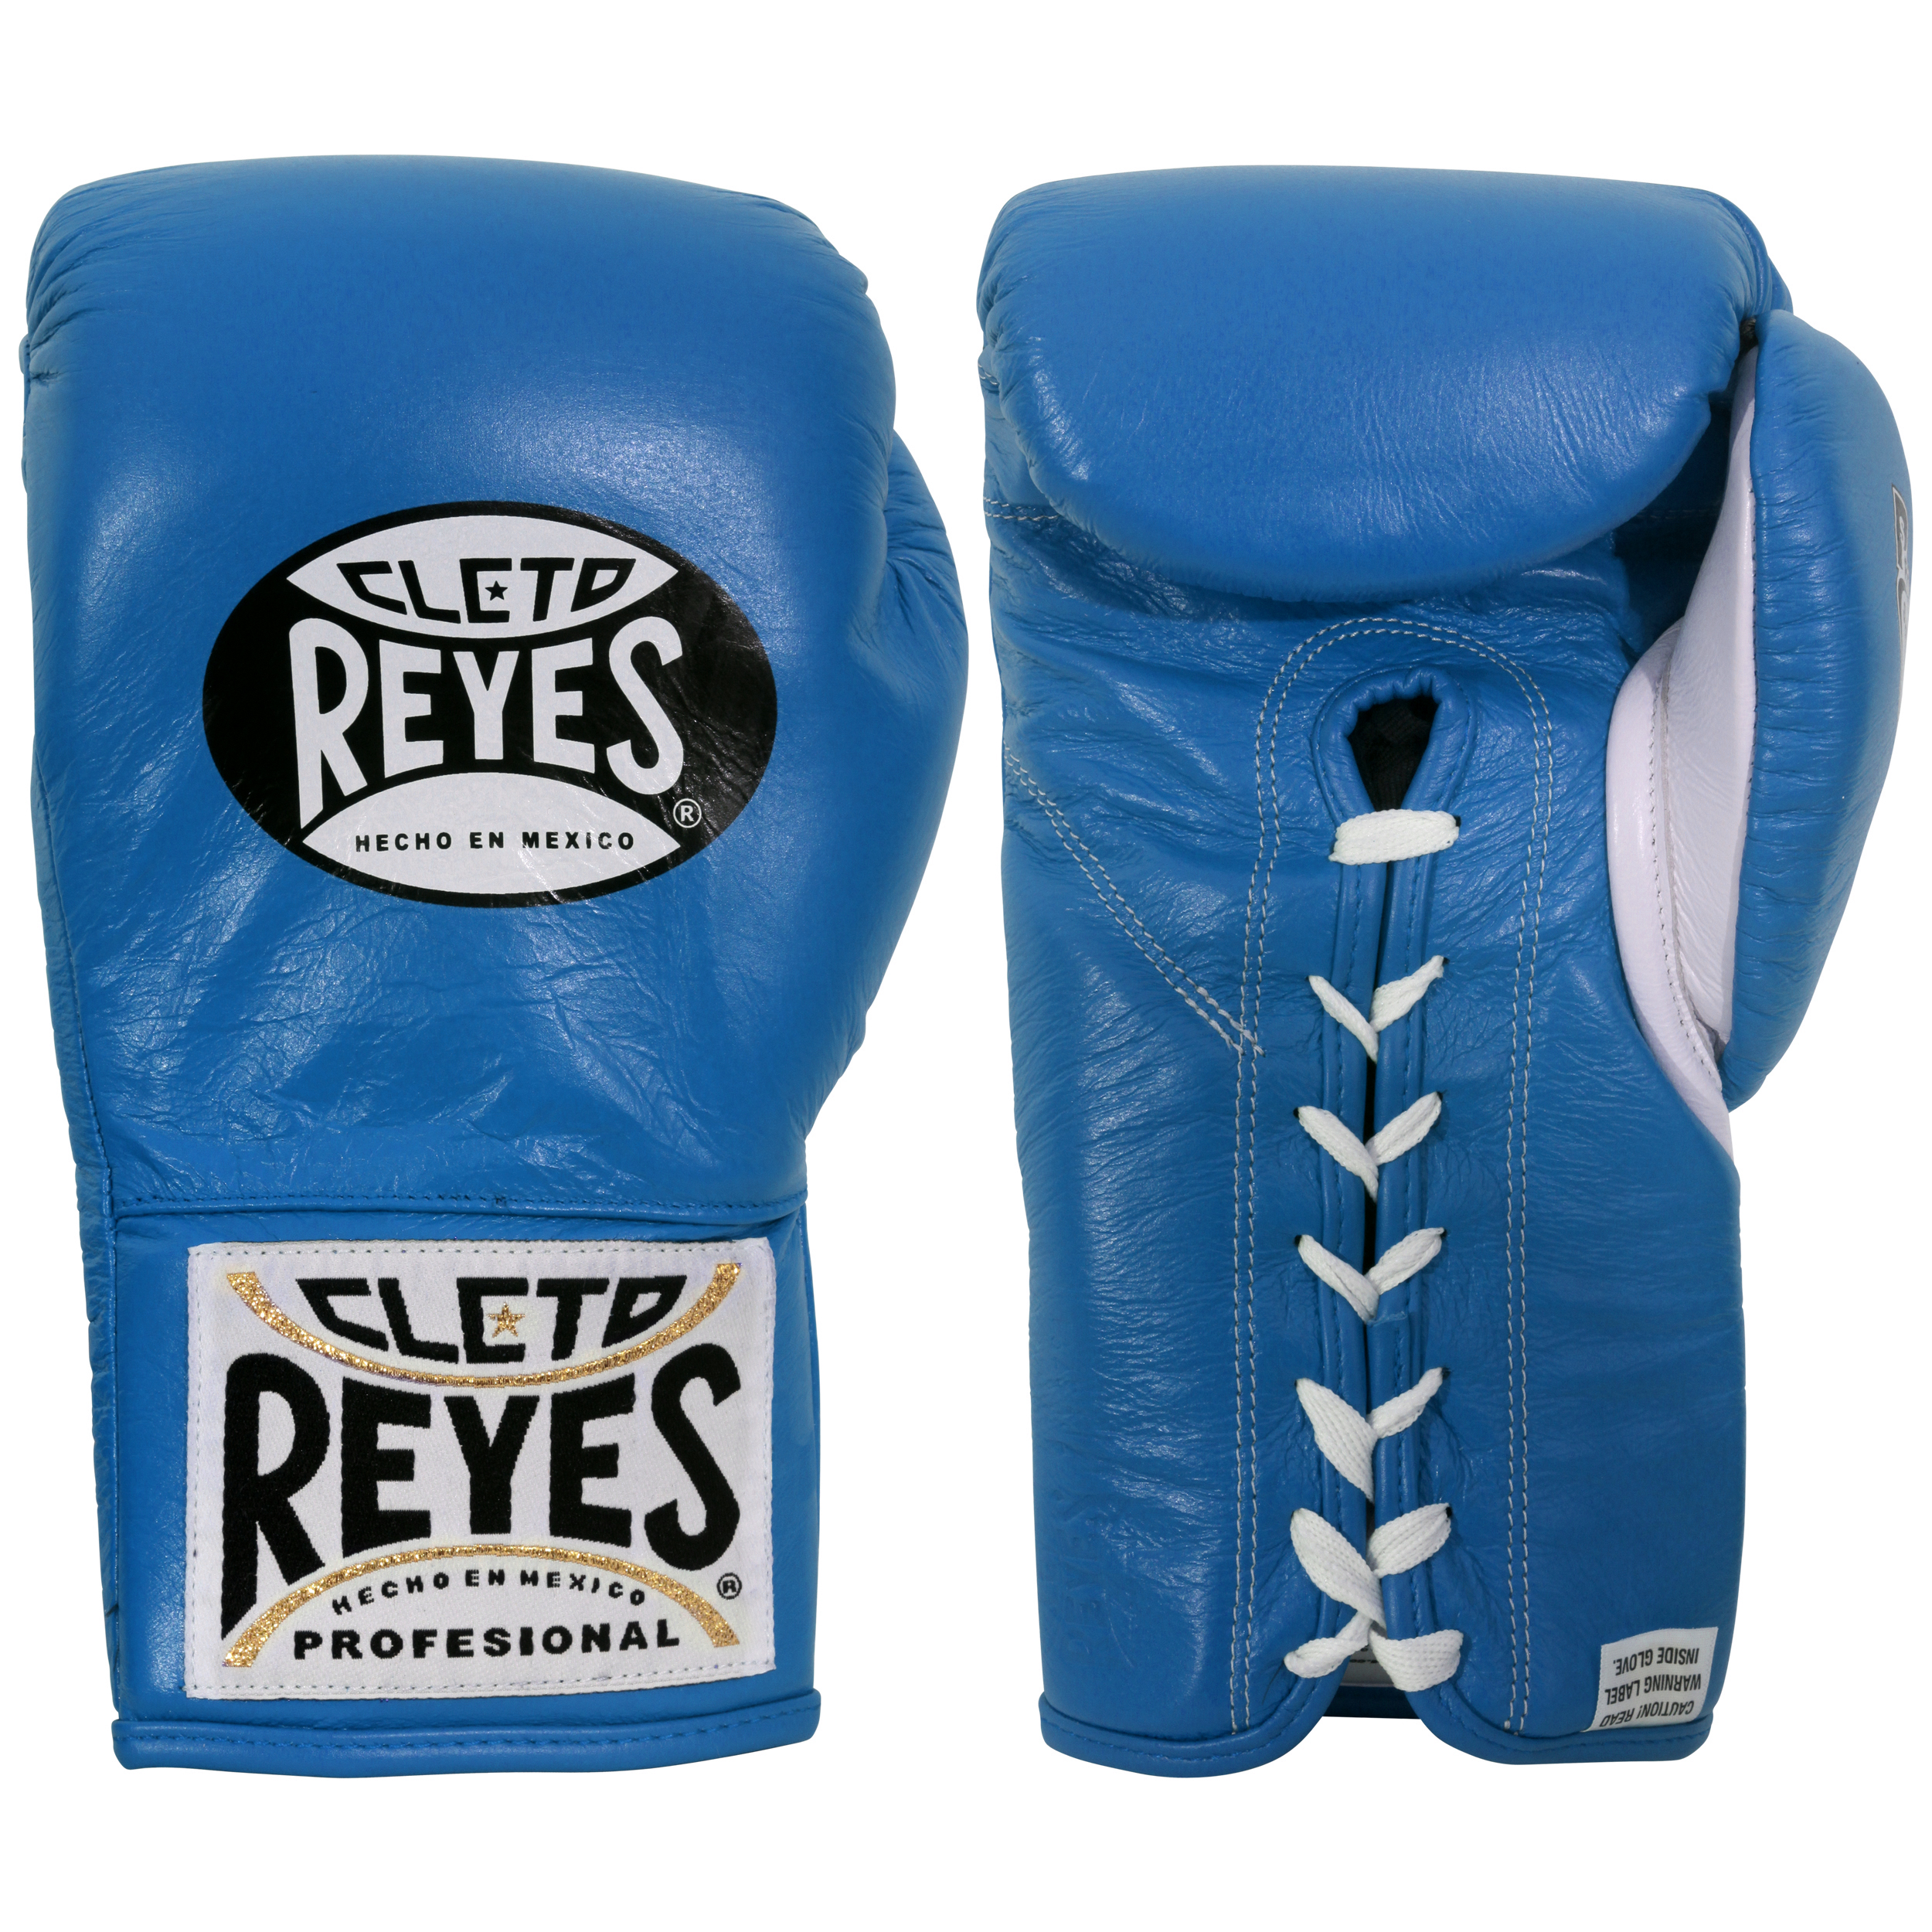 Cleto Reyes Safetec Professional Fight Gloves